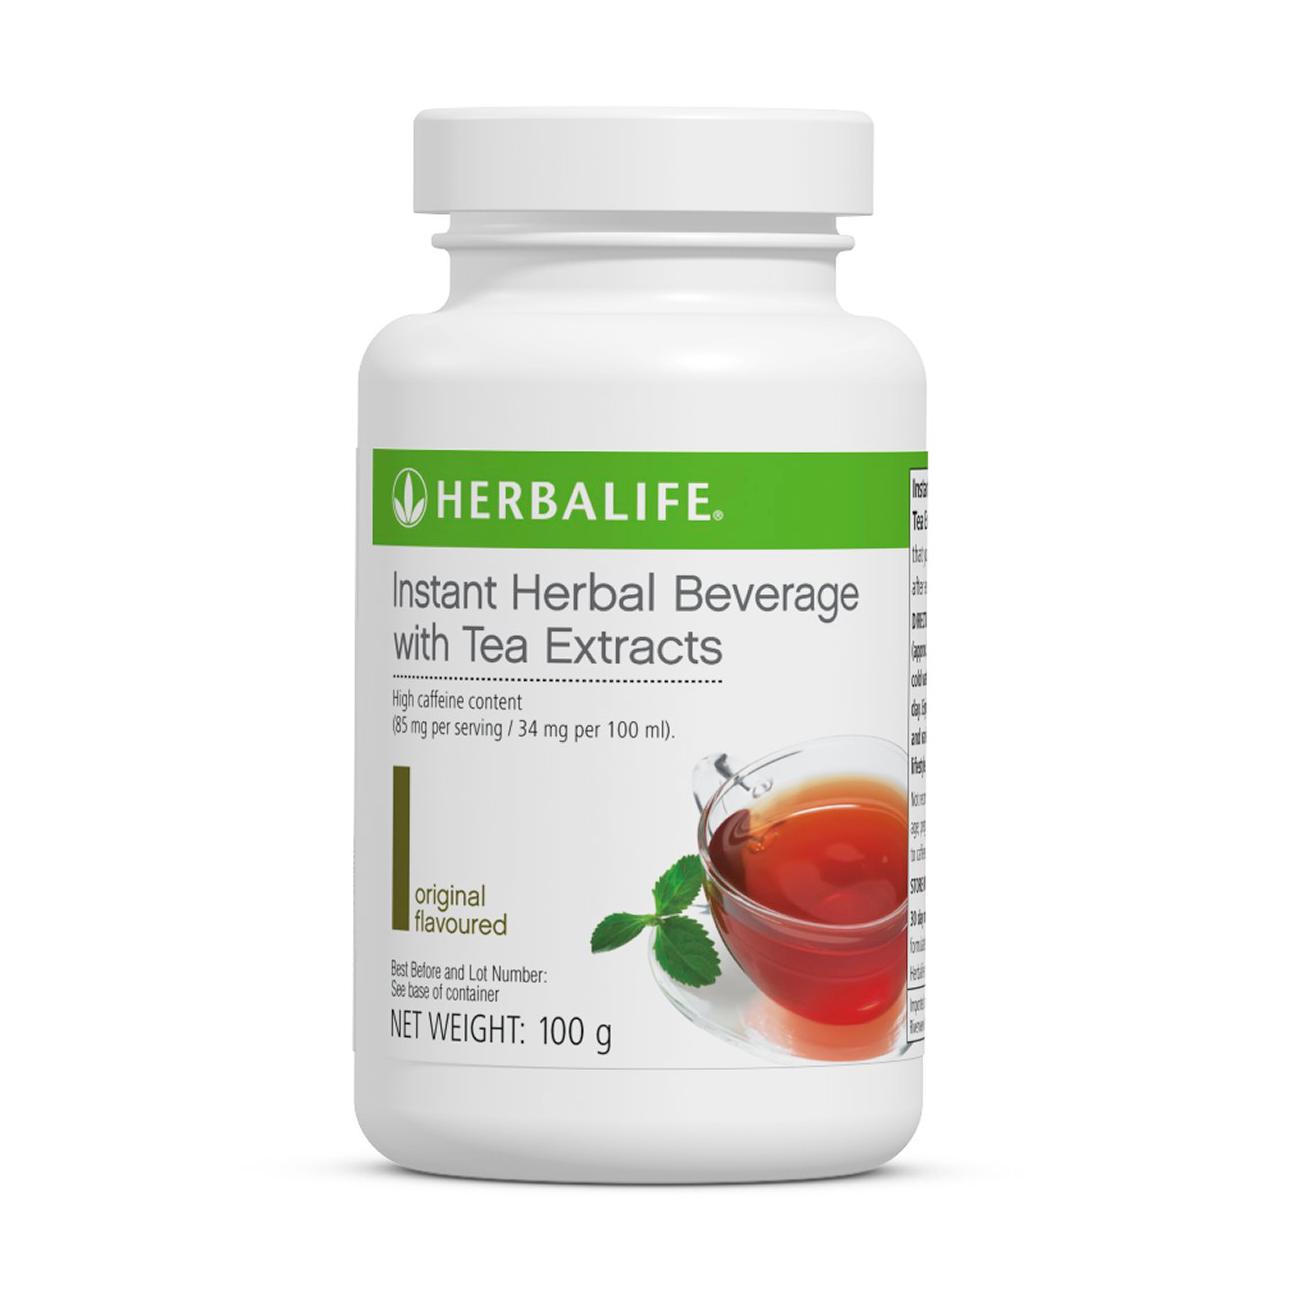 Instant Herbal Beverage  Original Flavoured 100 g product shot